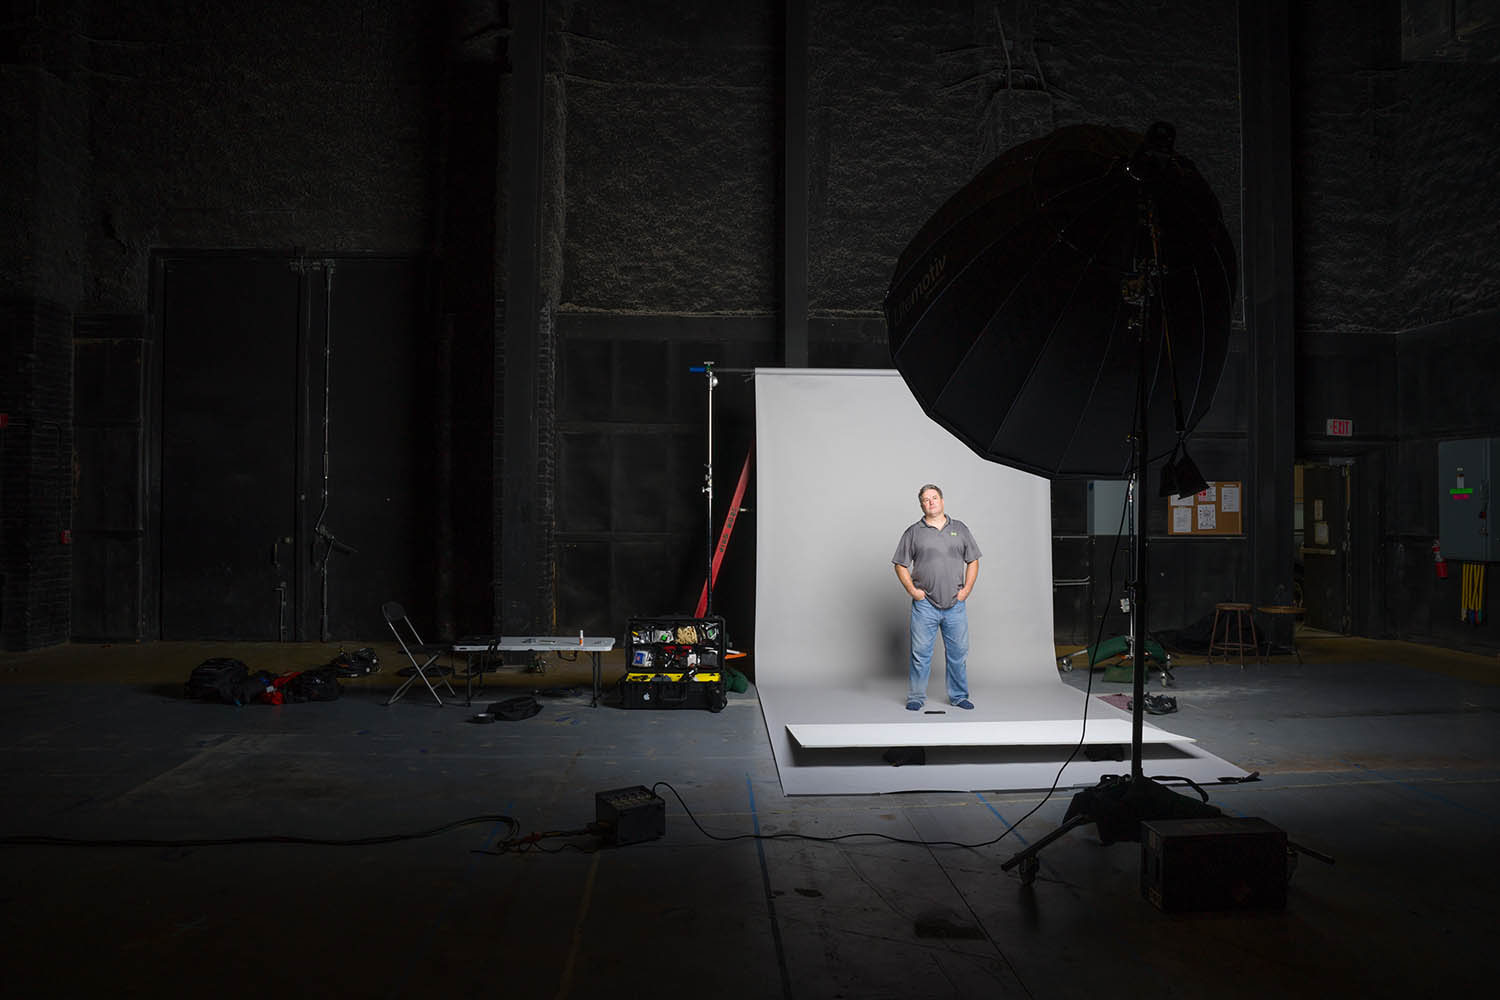 Special stills shoots, set dressing props, HMUW test/approval for TV Series and Feature Films. Lighting kit includes multiple strobes, modifiers, c-stands, seamless, tethered laptop etc.